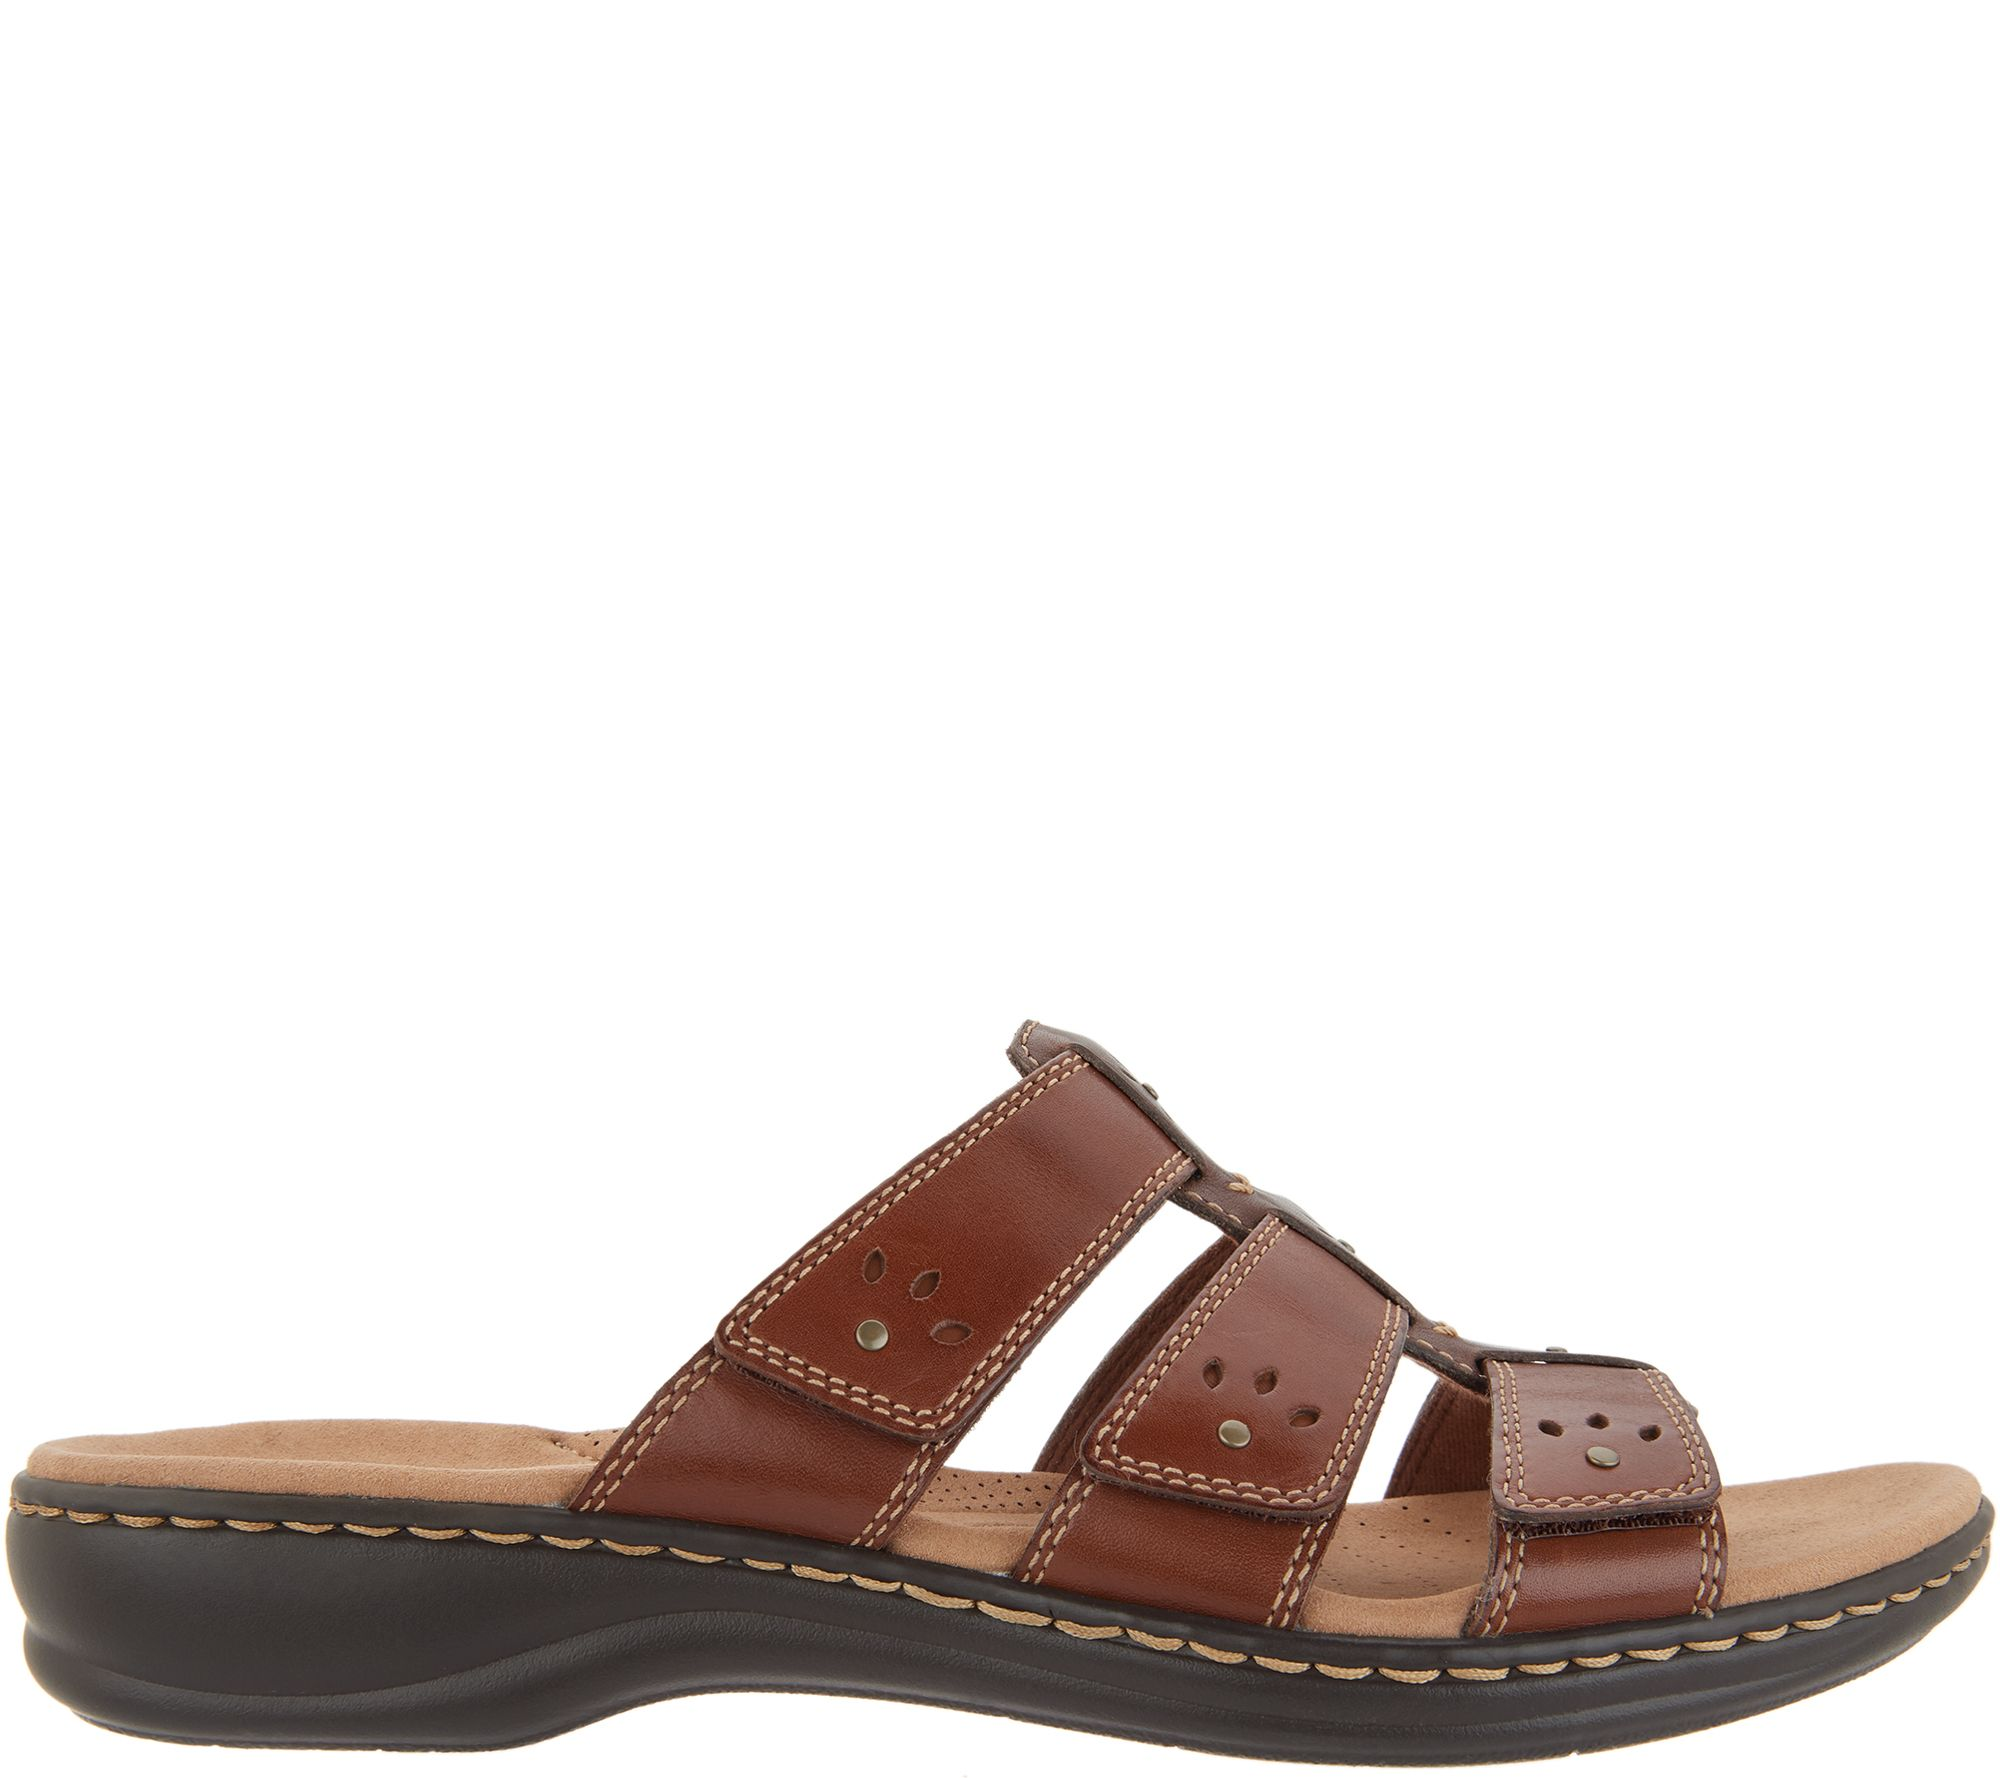 61499b6db62d Clarks Collection Leather Slide Sandals - Leisa Spring - Page 1 — QVC.com